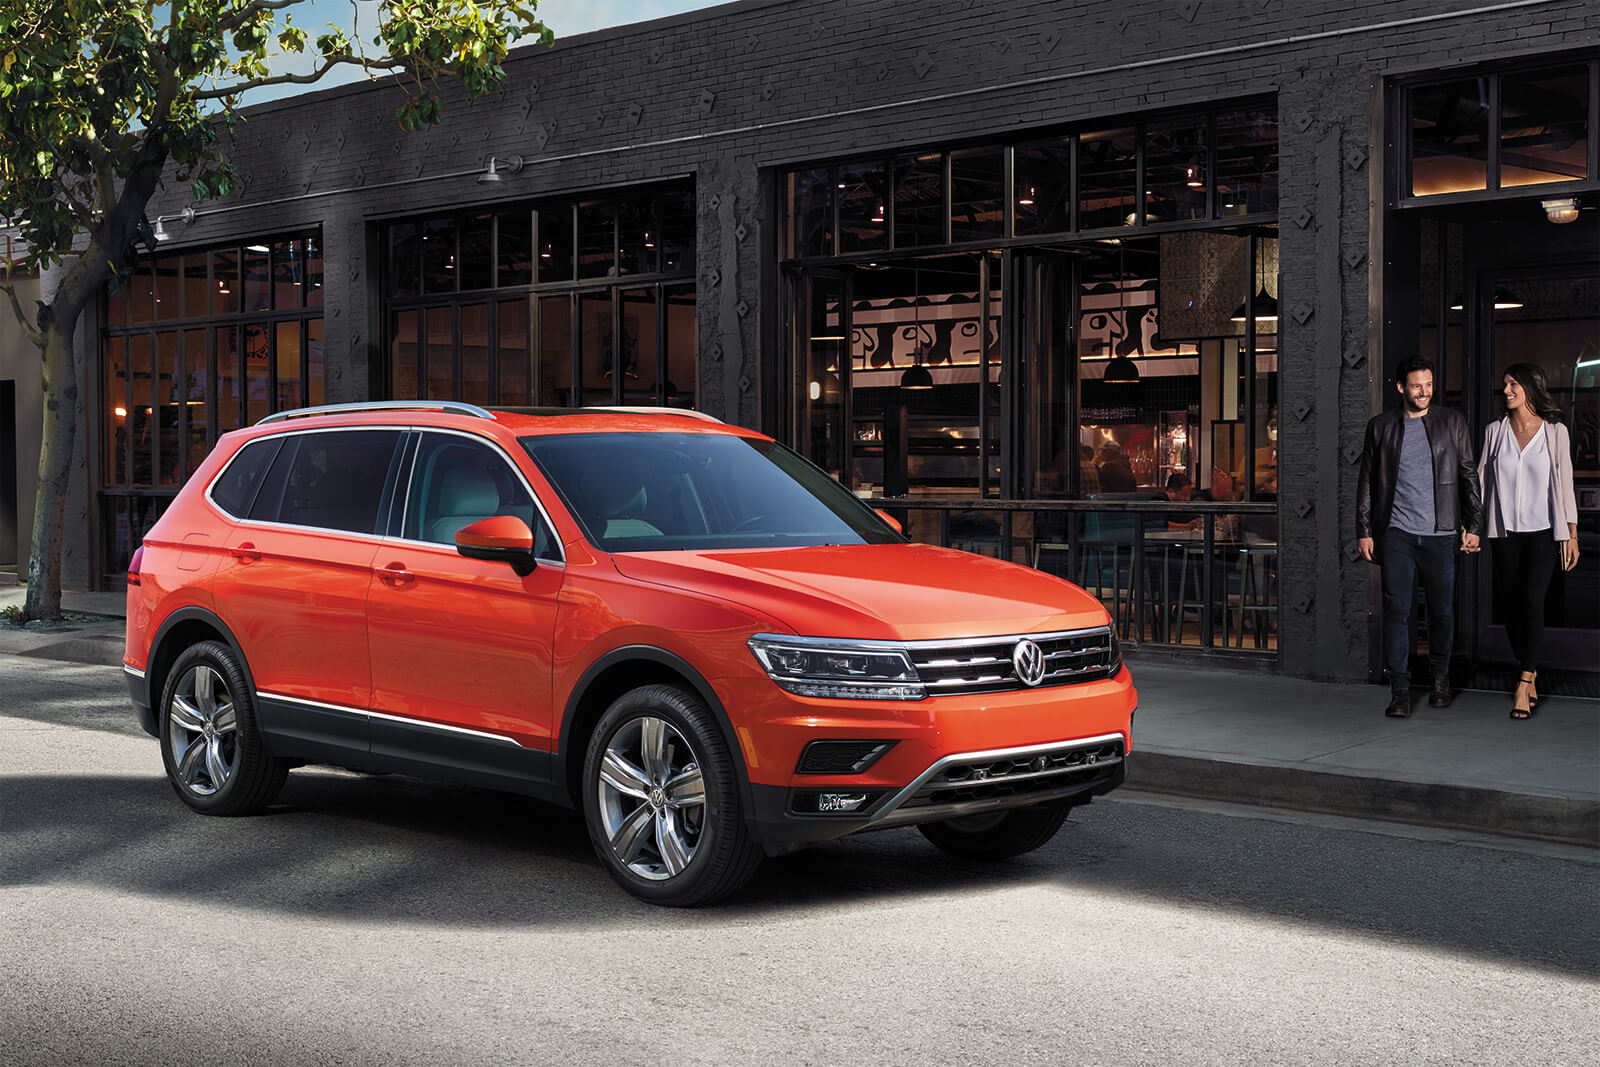 2019 Volkswagen Tiguan Review, Configurations, Price | Ann